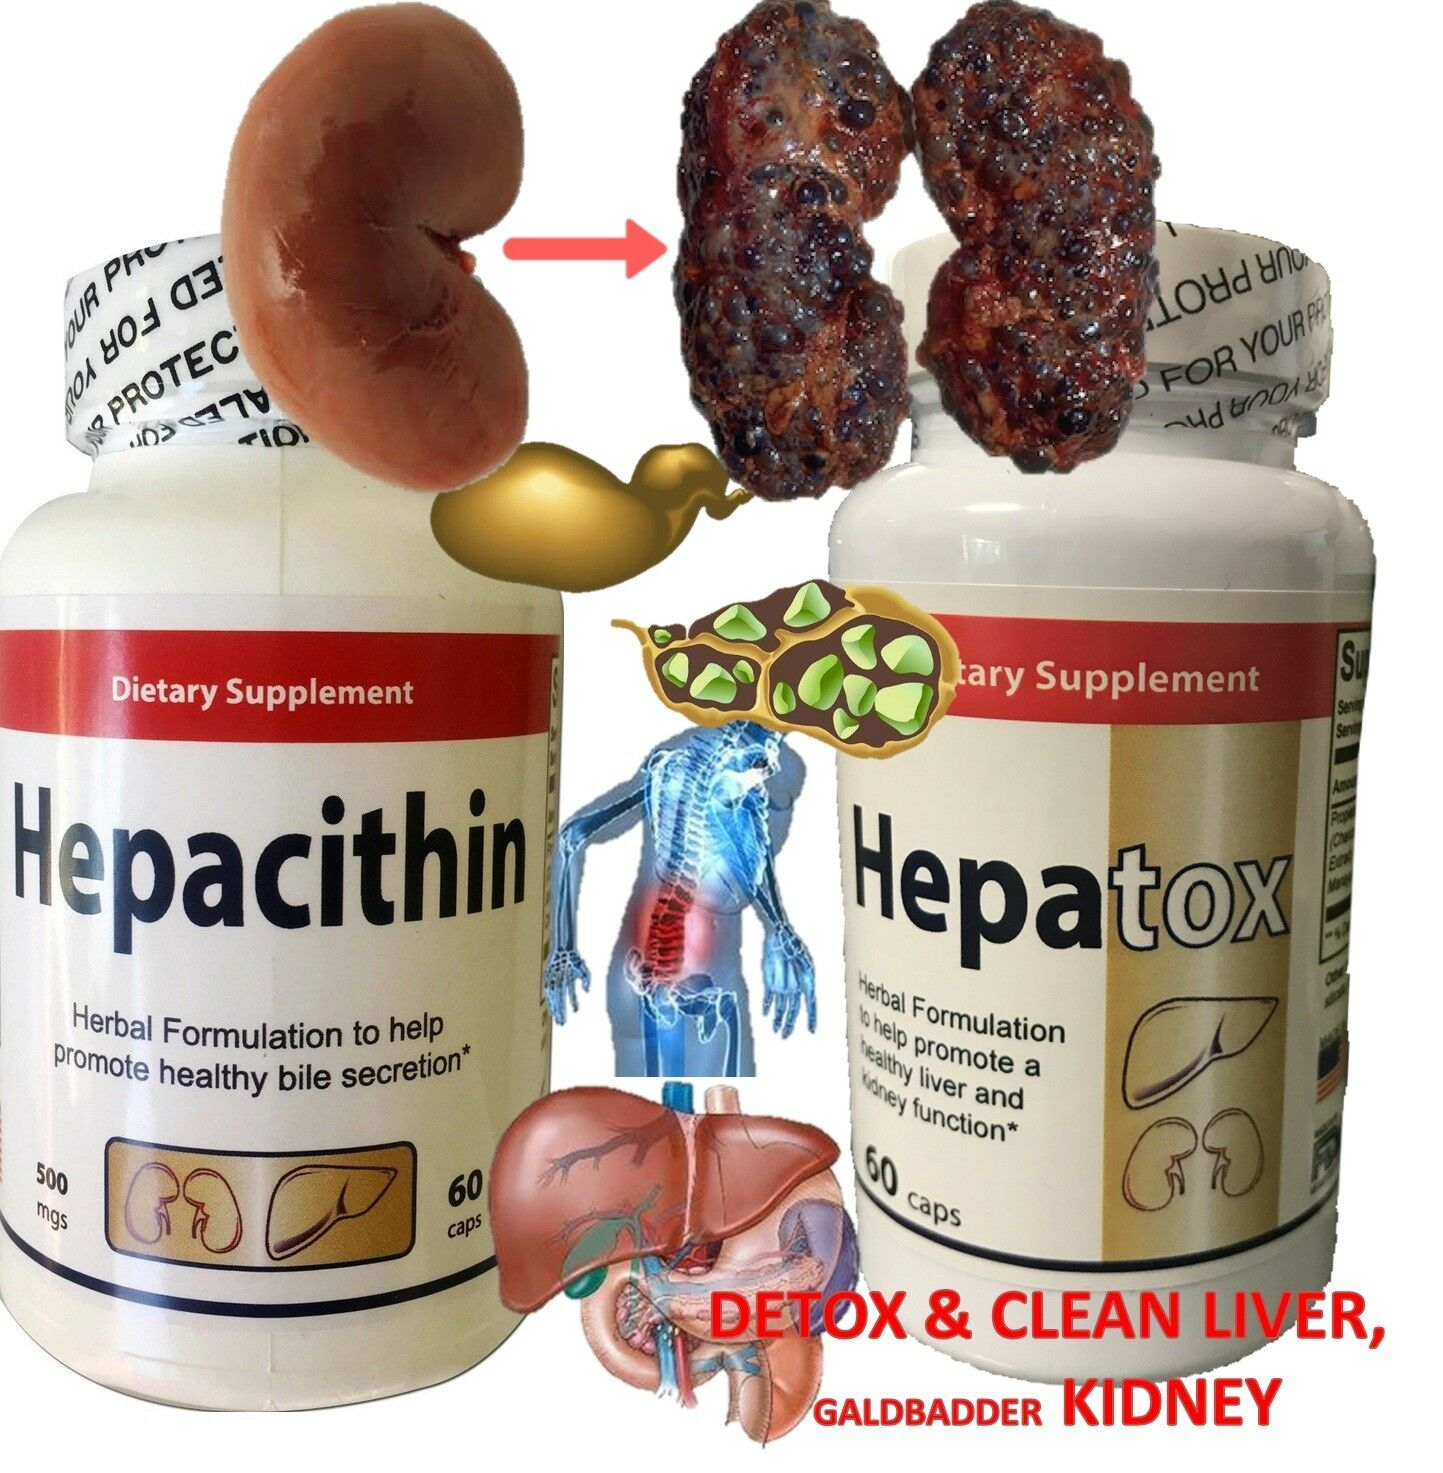 FATTY LIVER HUMAN NATURAL SUPPLEMENT TREAT PREVENT MADE IN USA liver detox clean